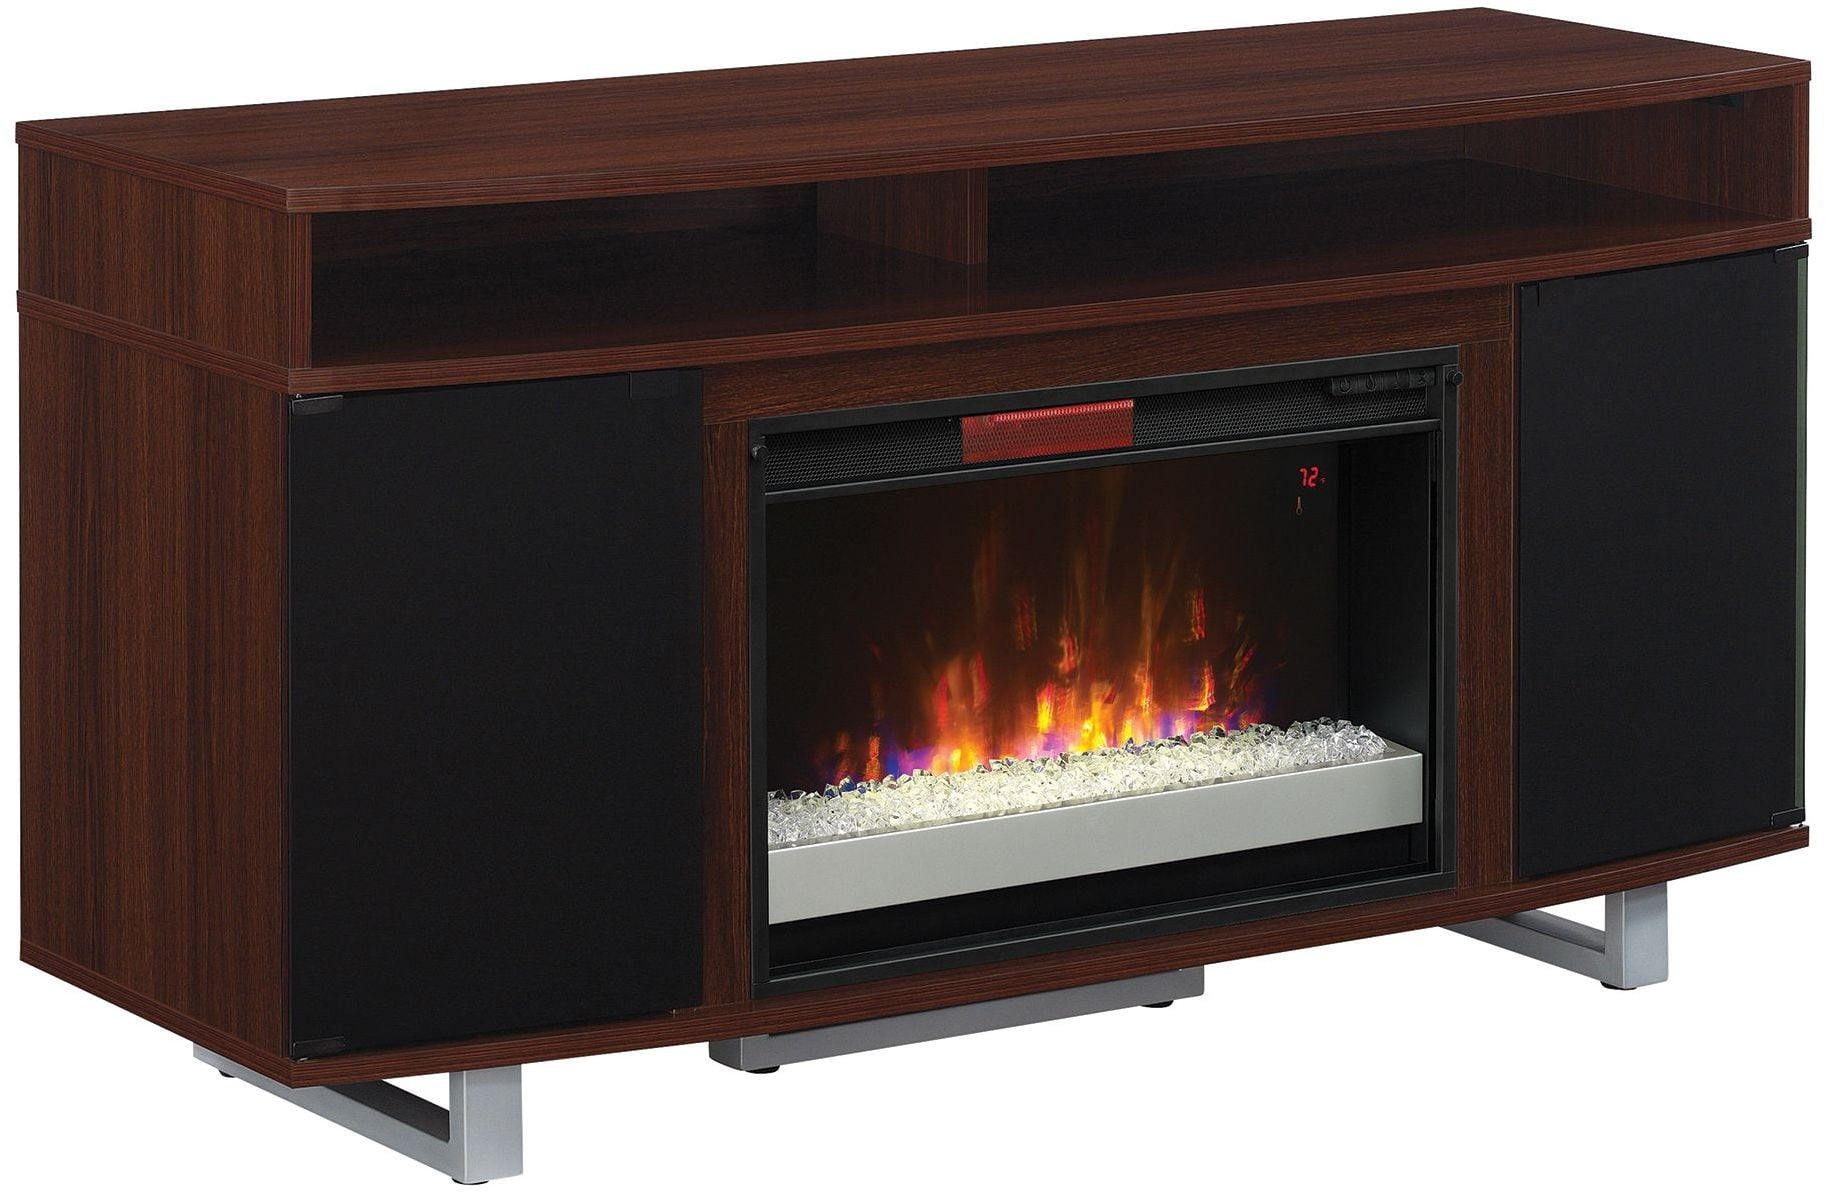 Classicflame High Gloss Cherry Enterprise Lite Tv Stand